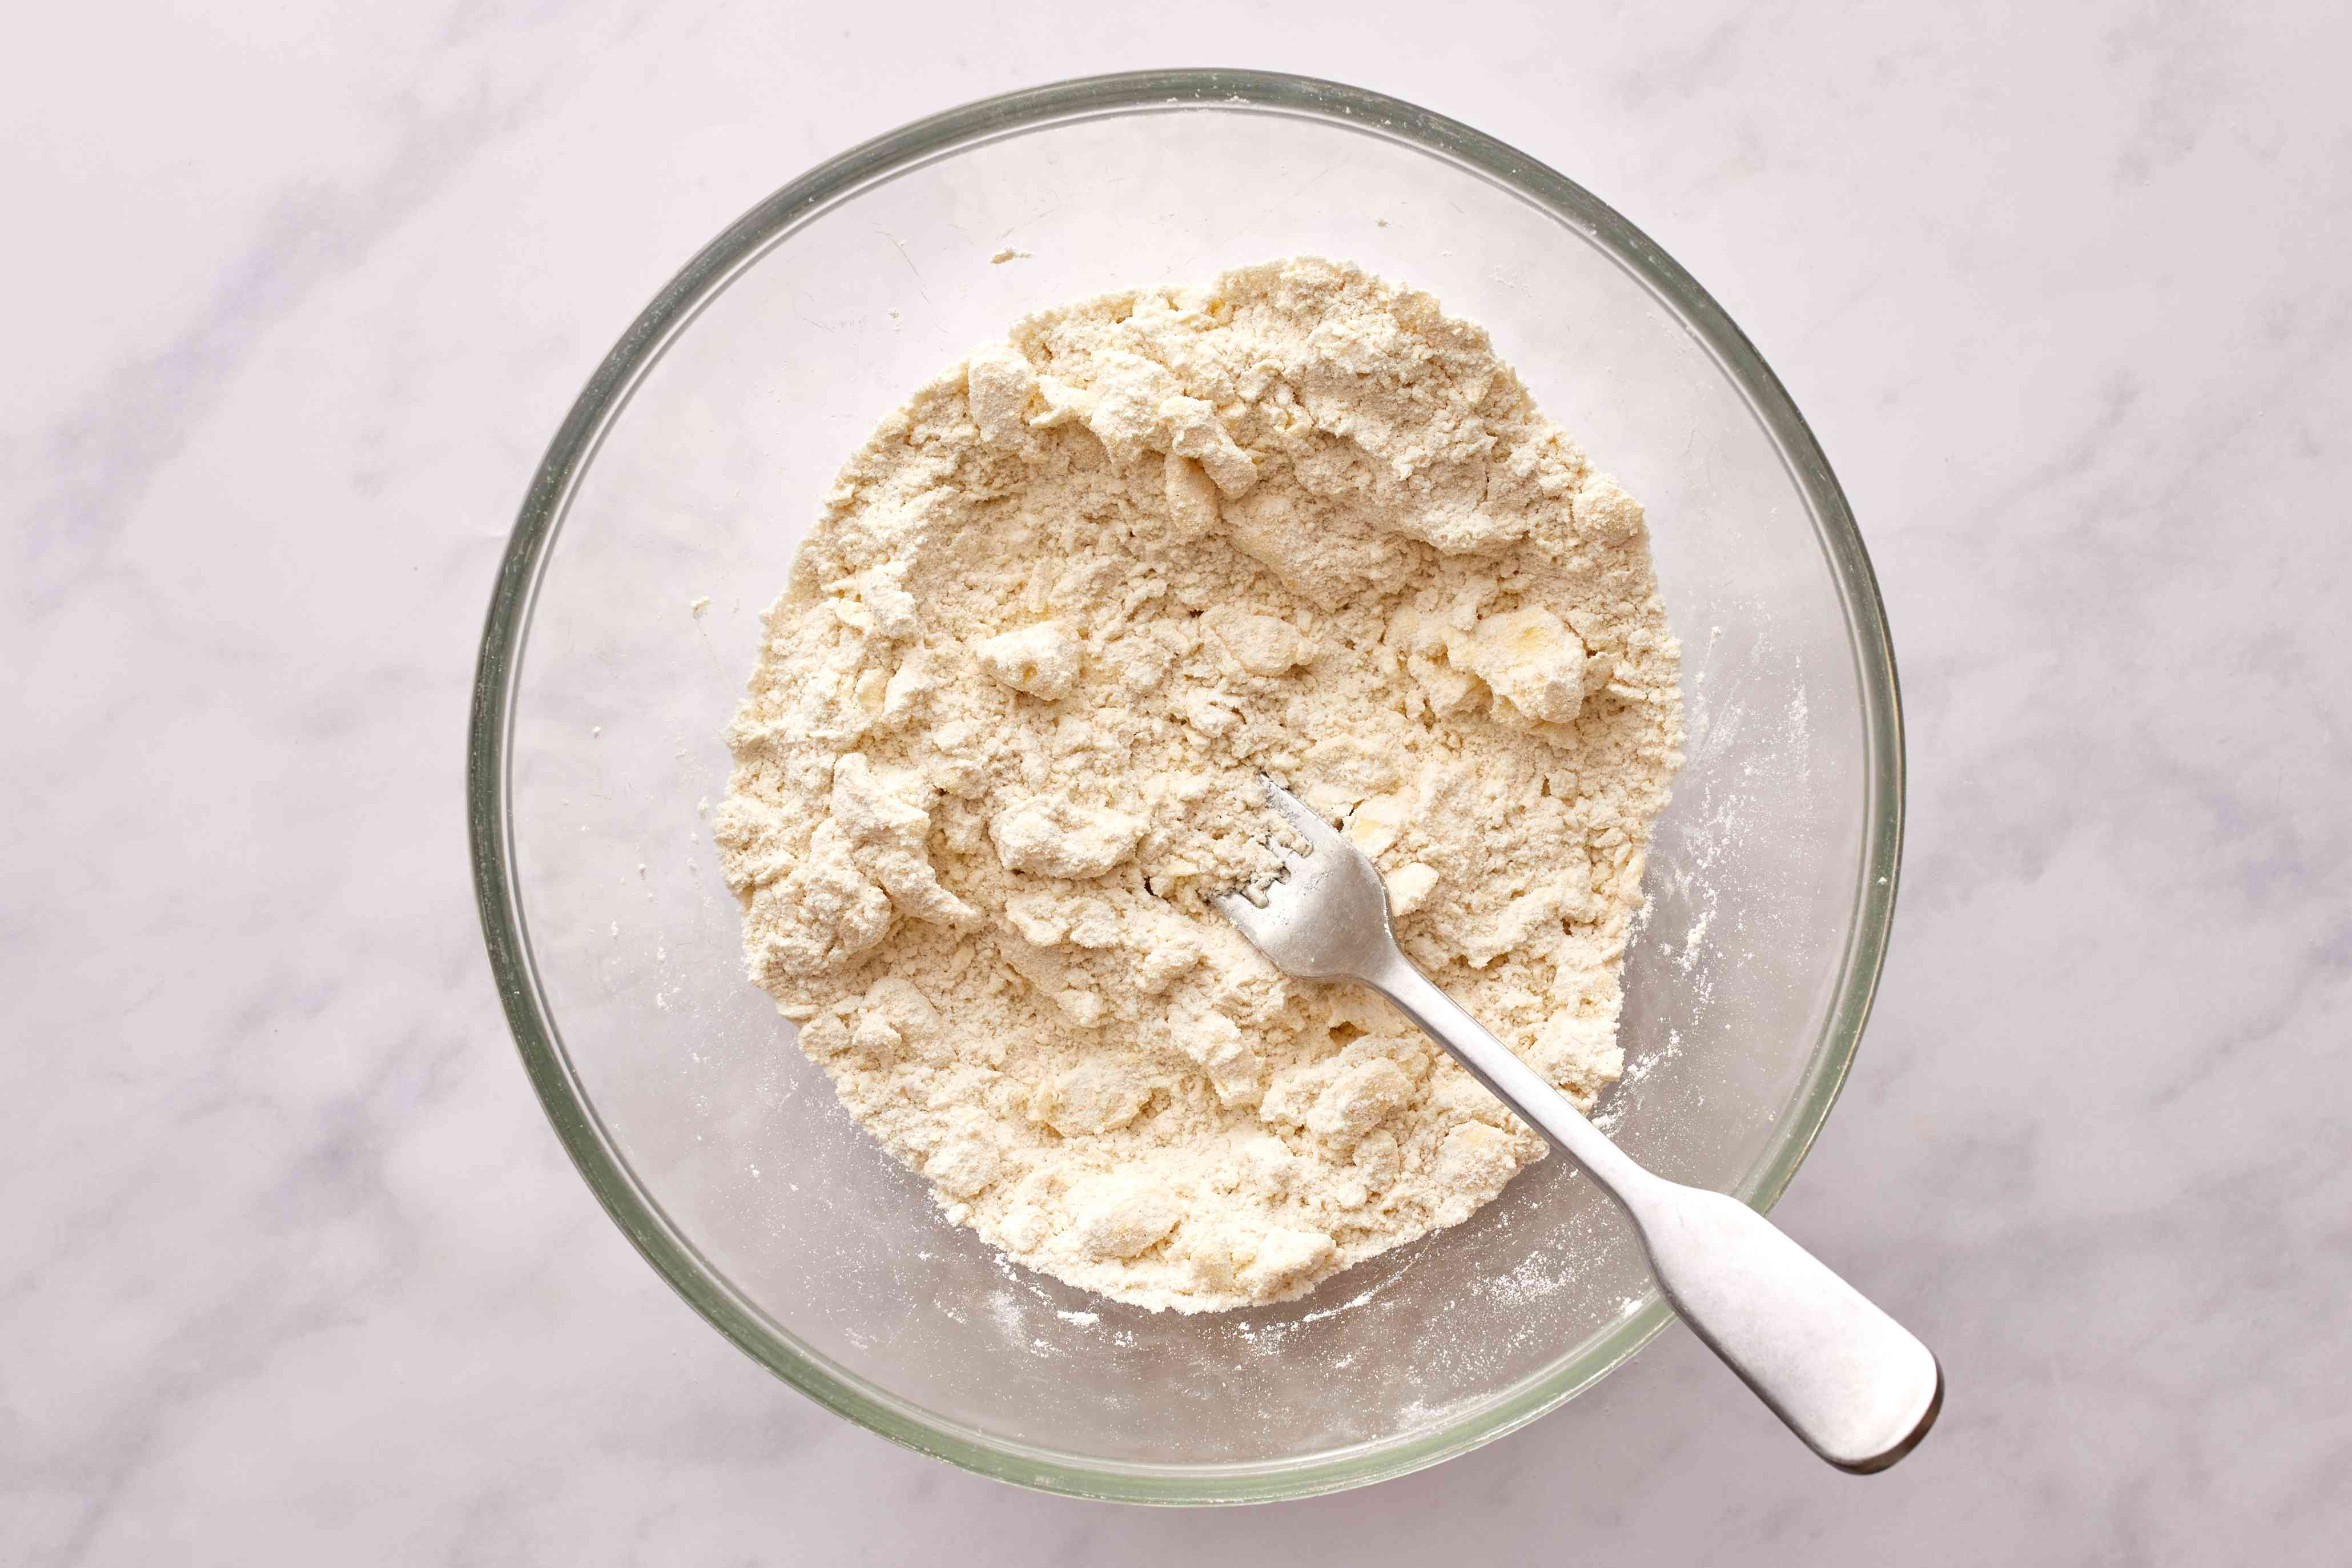 Use your fingers work the butter into the flour mixture